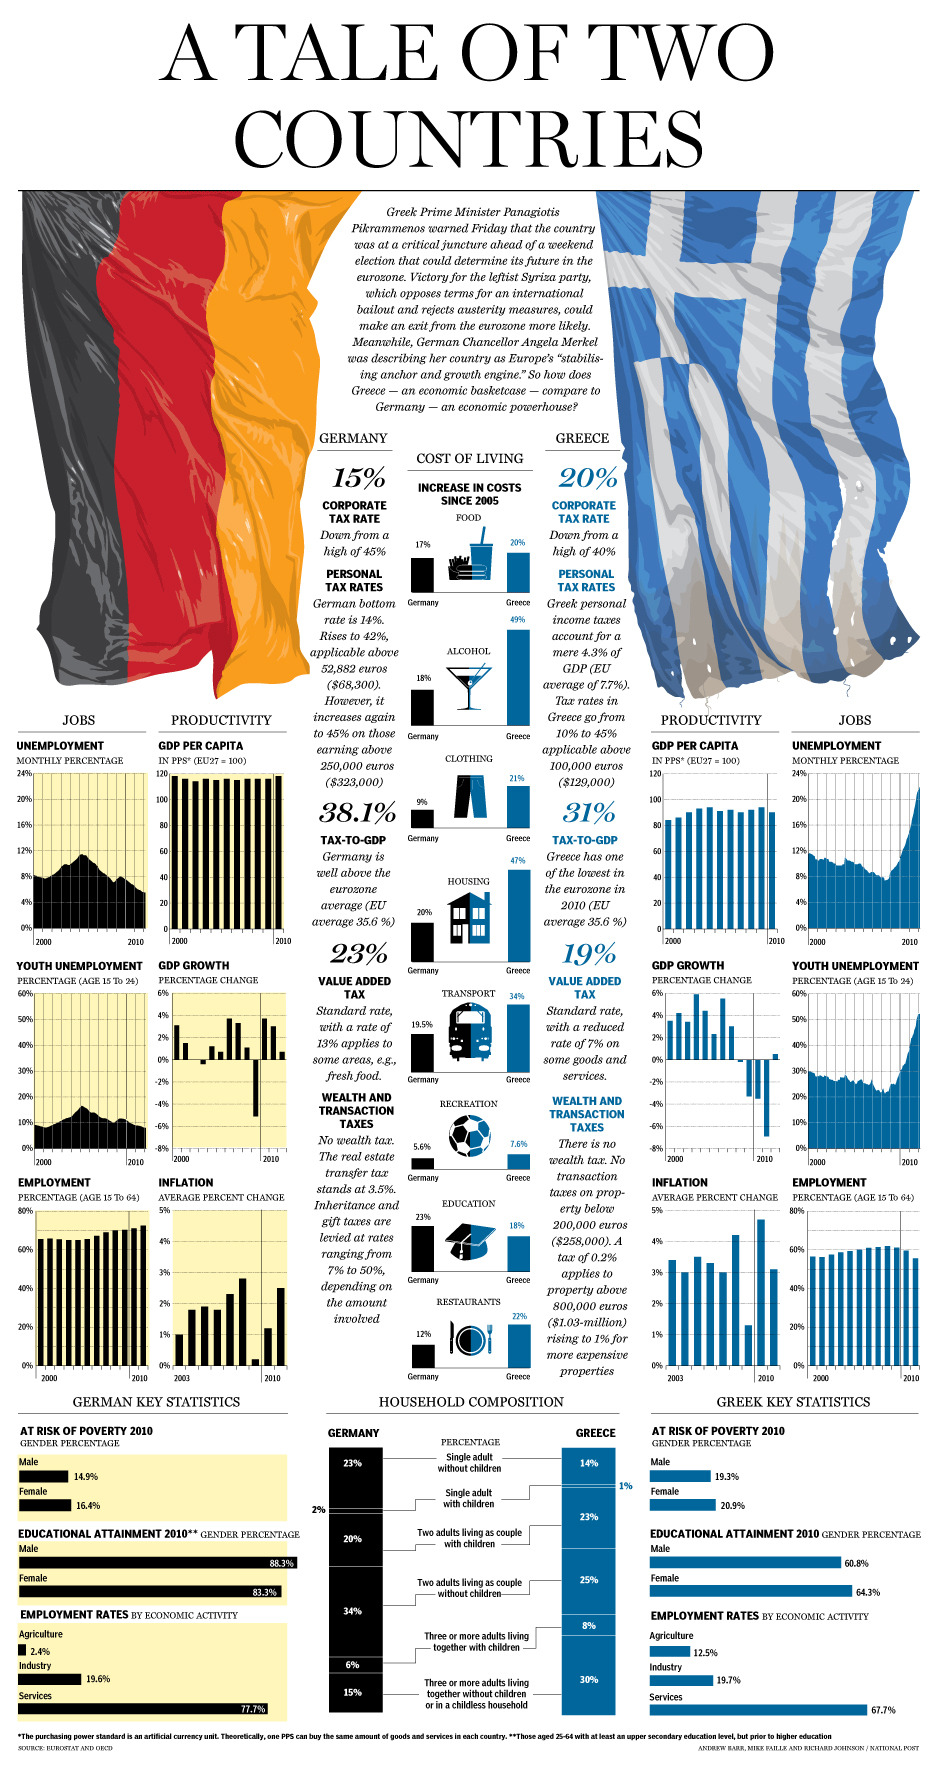 "Graphic: Greece and Germany – Europe's economic extremesAs the Greek Prime Minister warned of potential dire consequences ahead of the country's election, German Chancellor Angela Merkel described her country as Europe's ""stabilizing anchor and growth engine."" So how does Greece — an economic basketcase — compare to Germany — an economic powerhouse?"